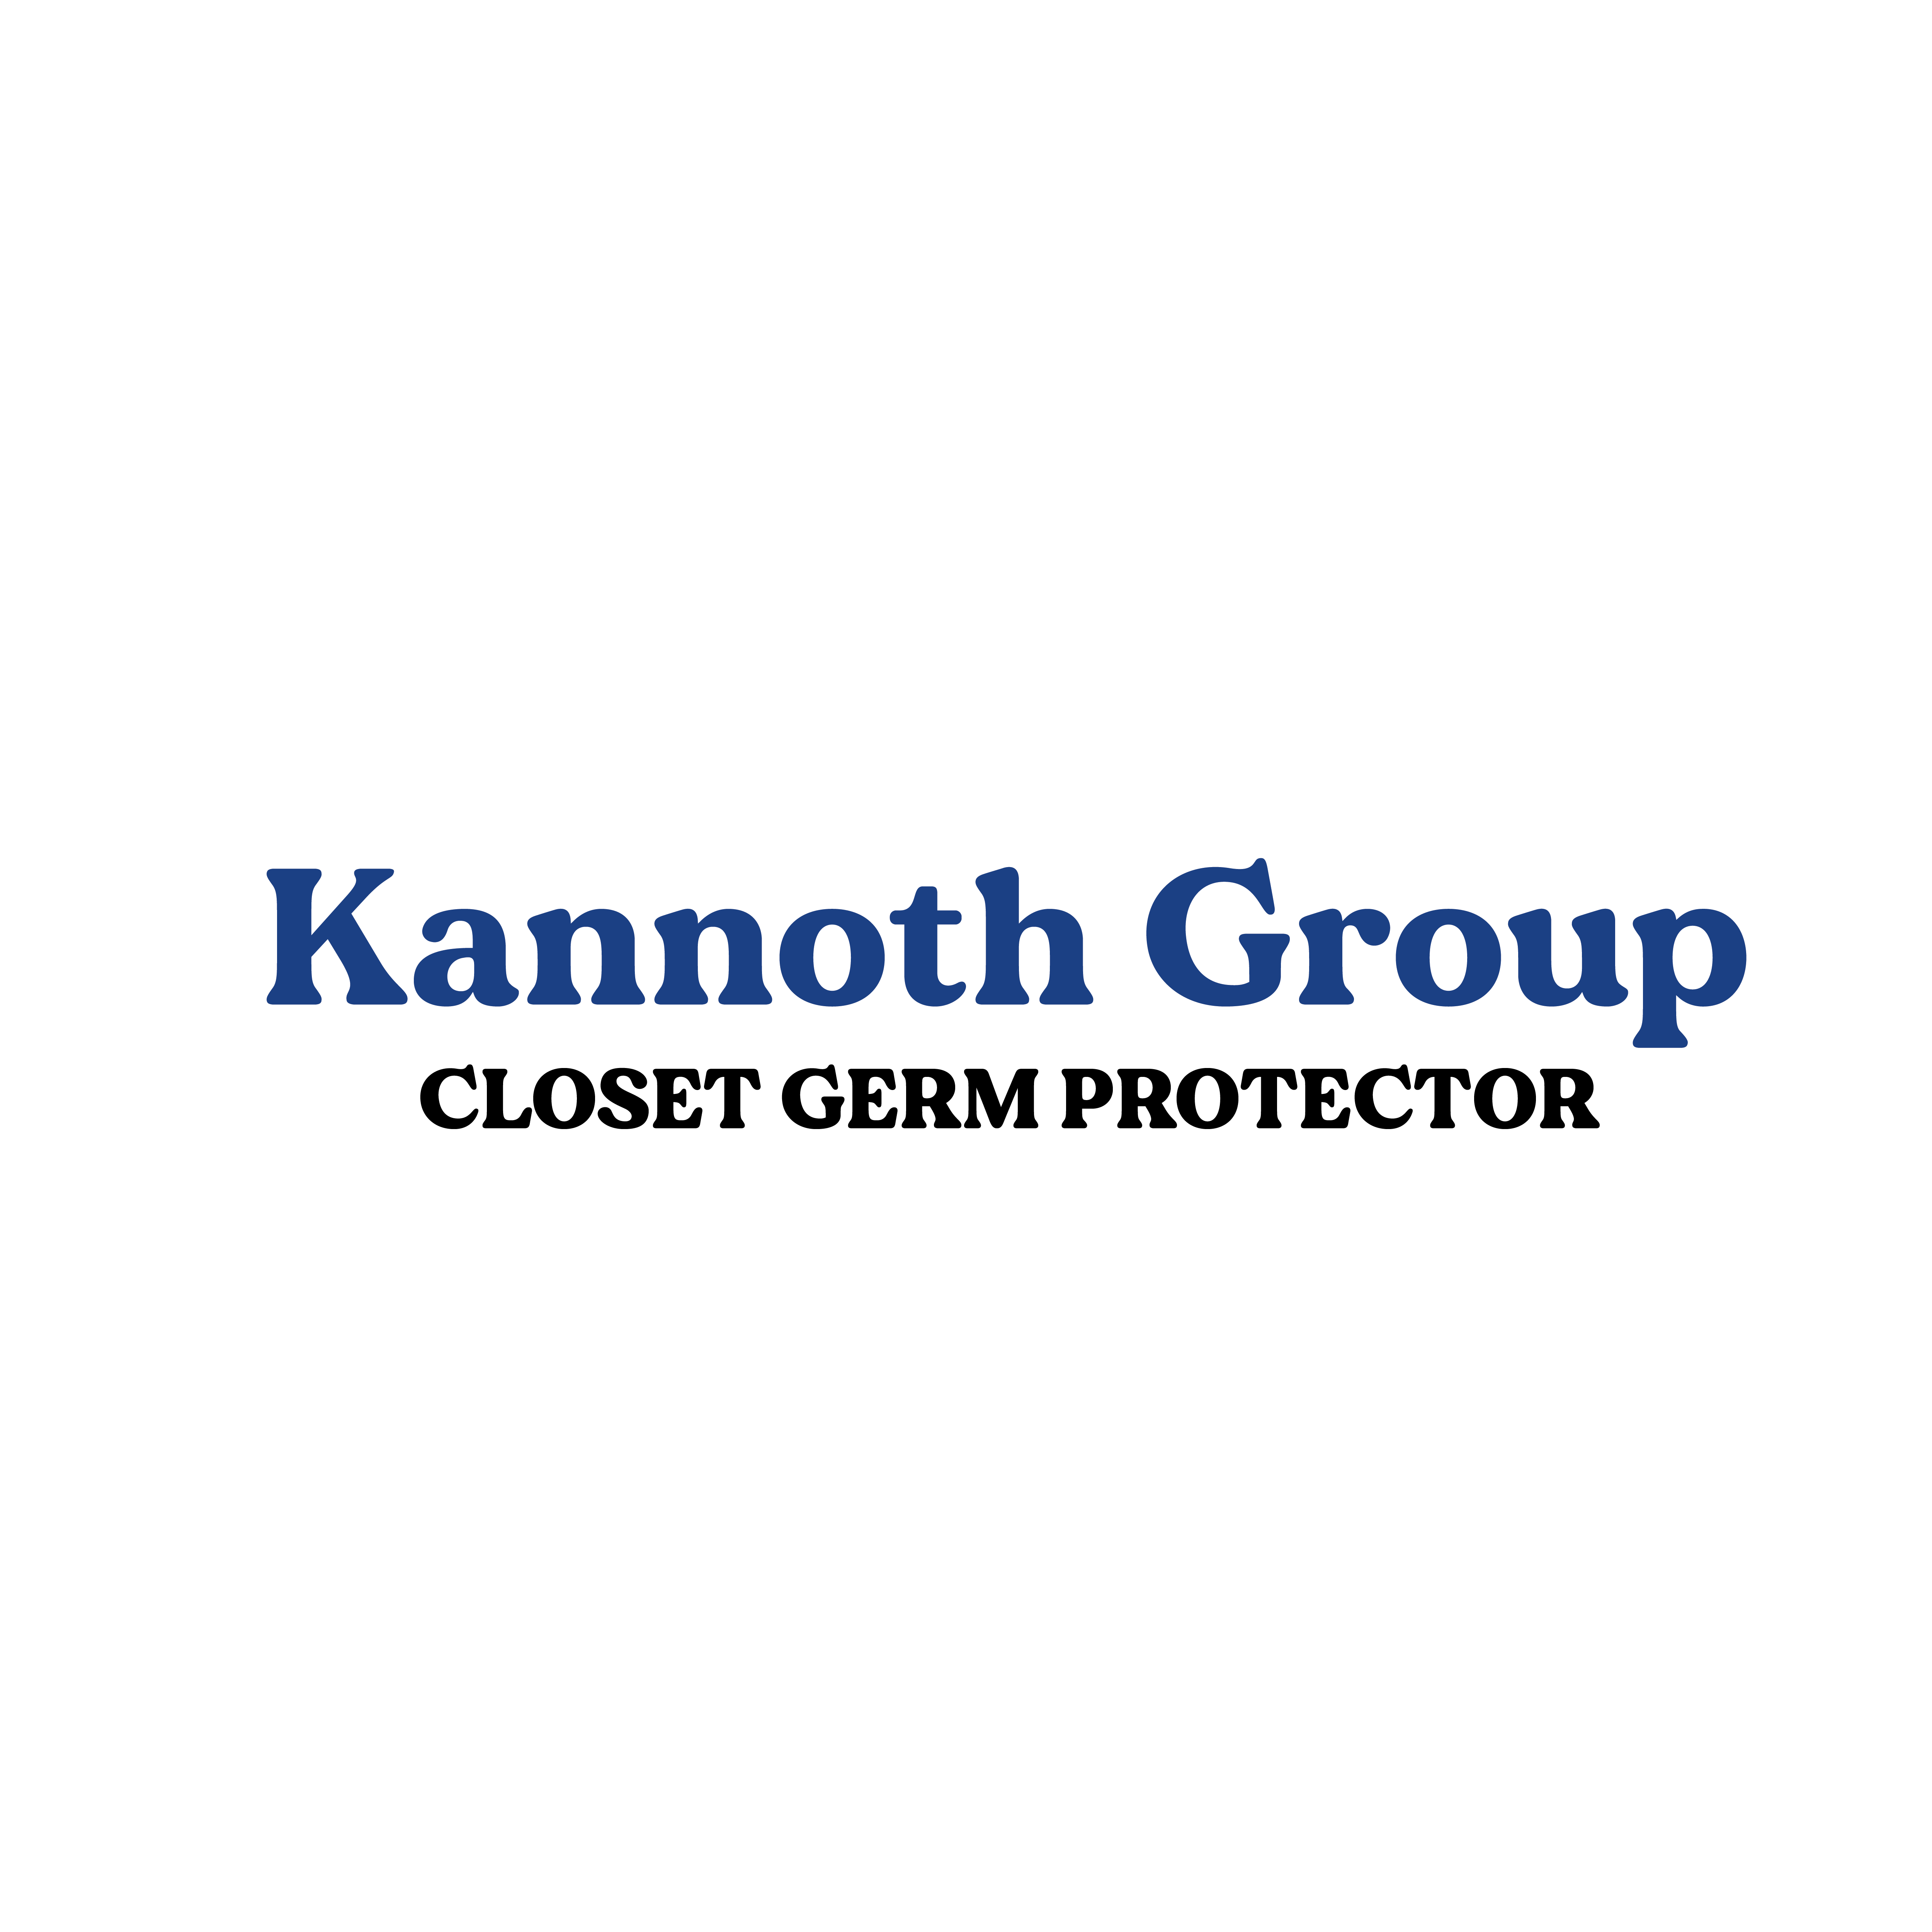 Kannoth Group Sanitizers